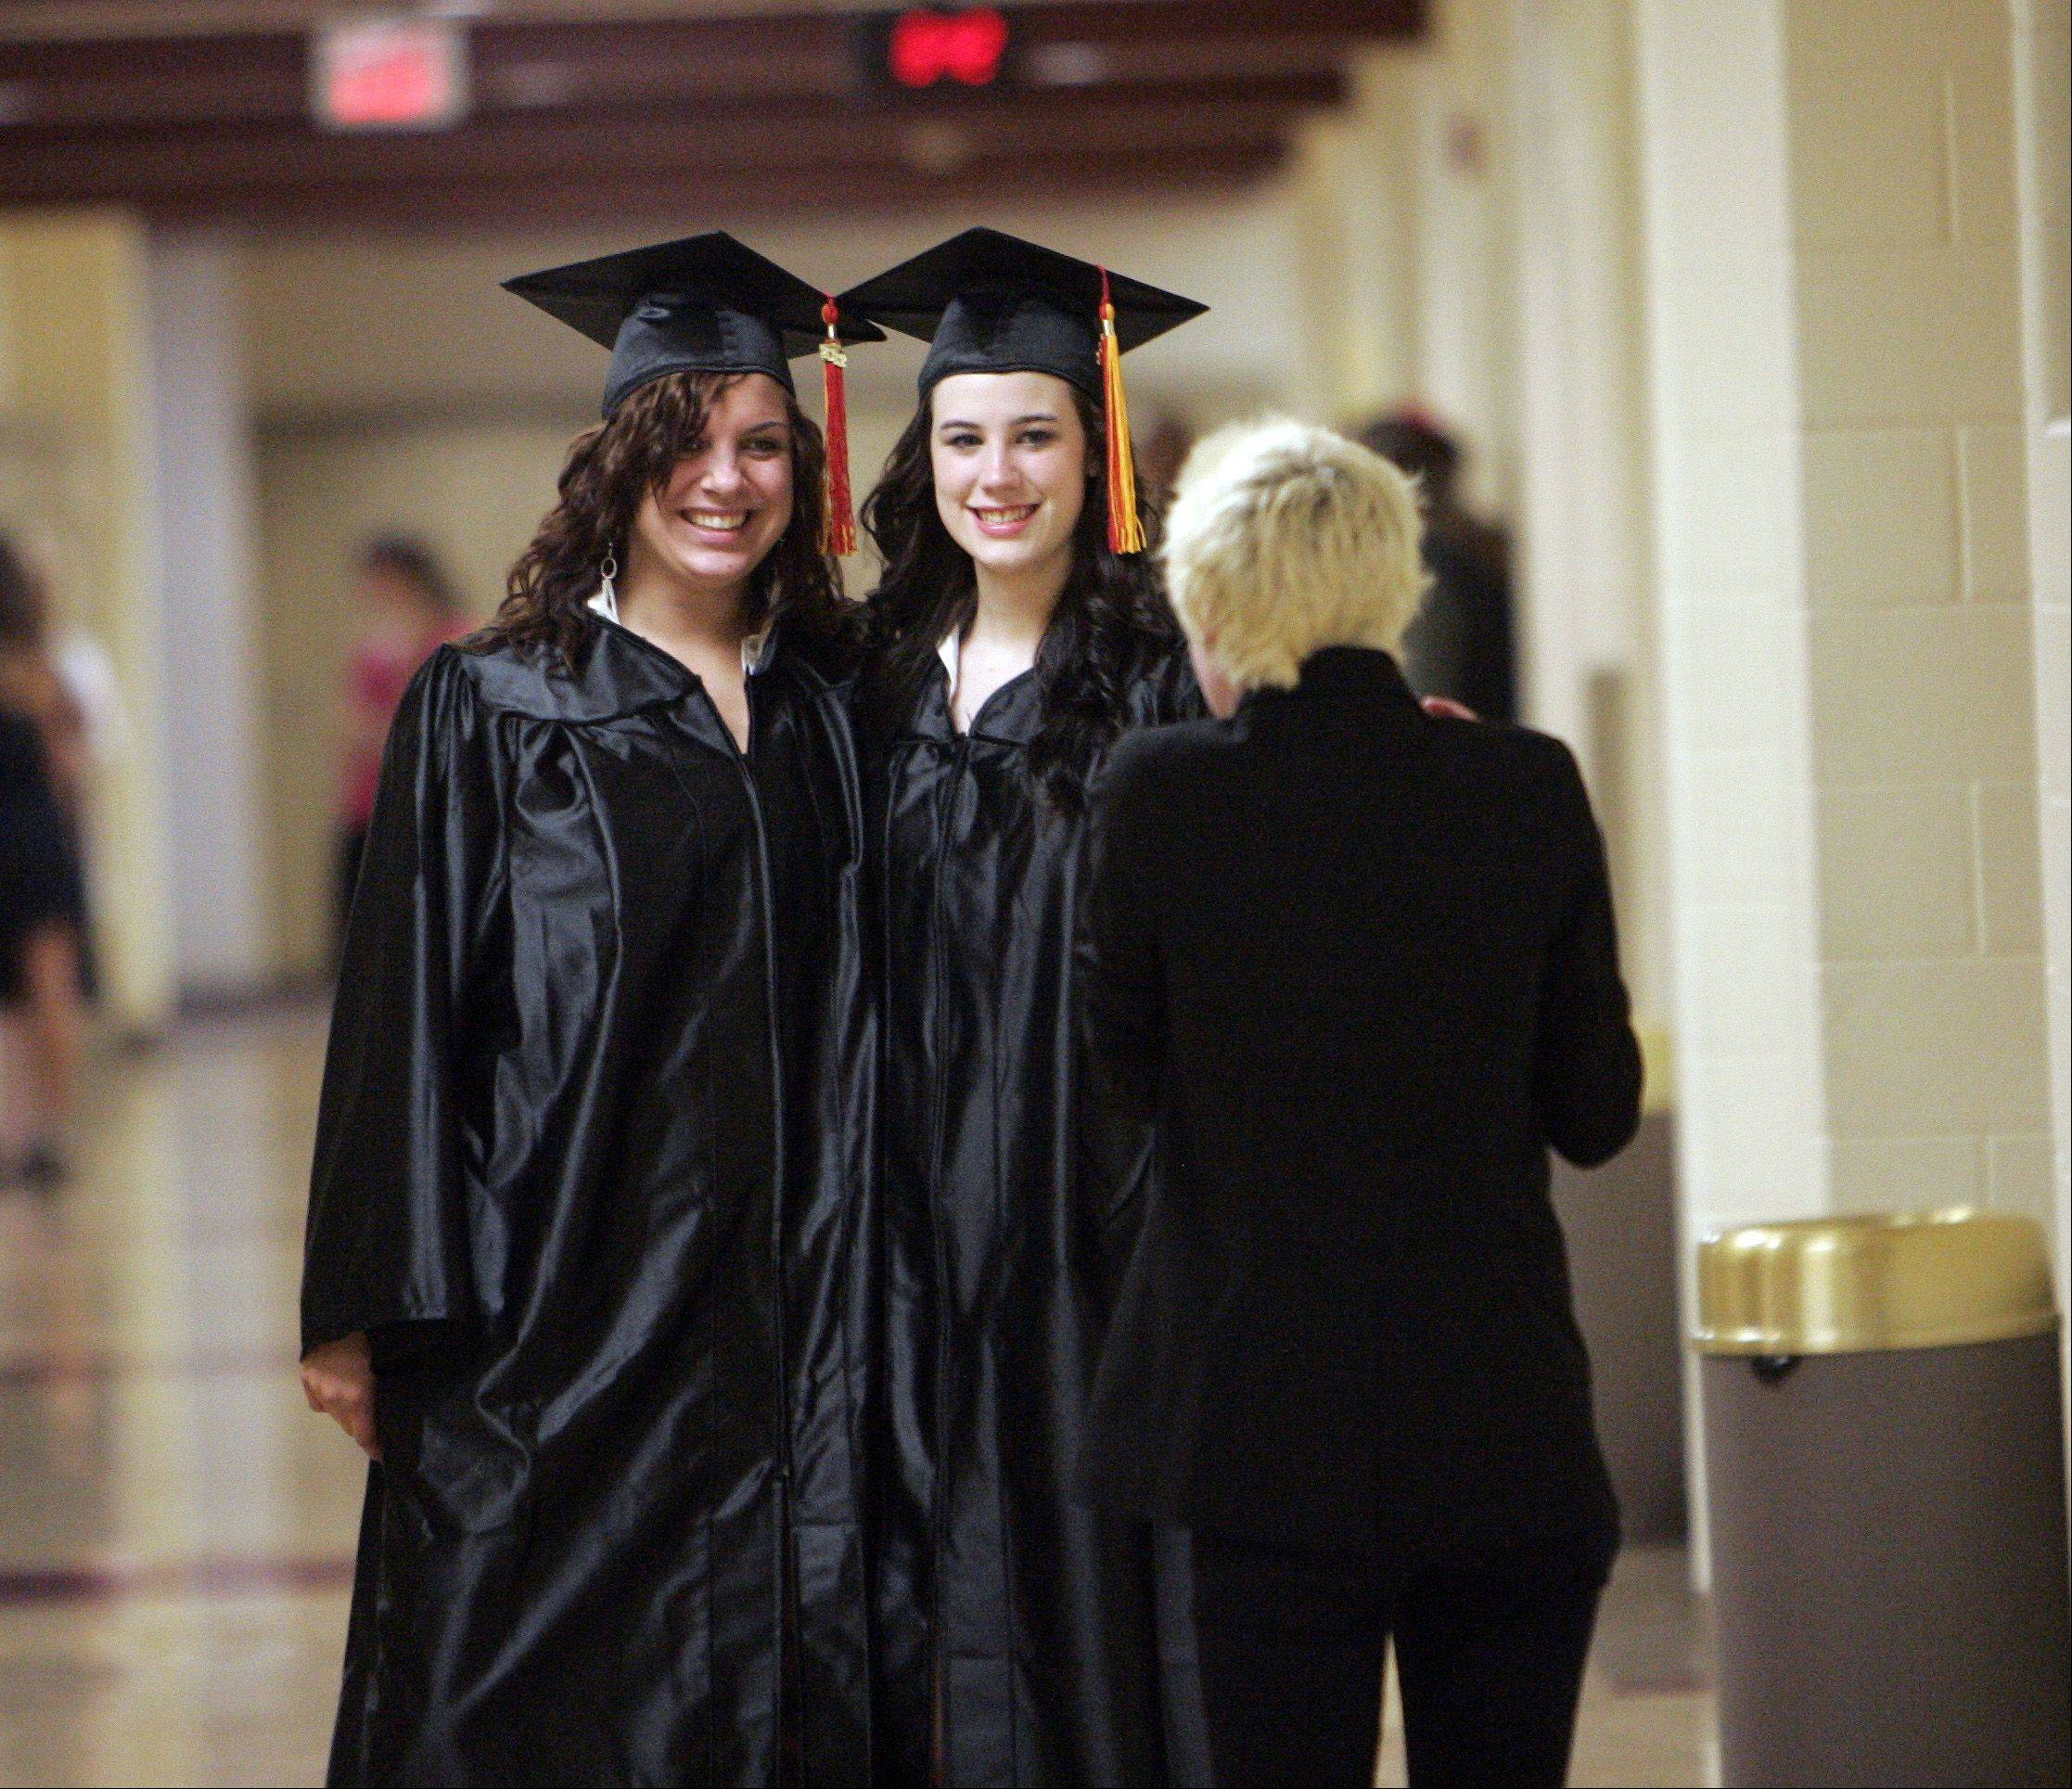 Images from the Batavia High School graduation ceremony.